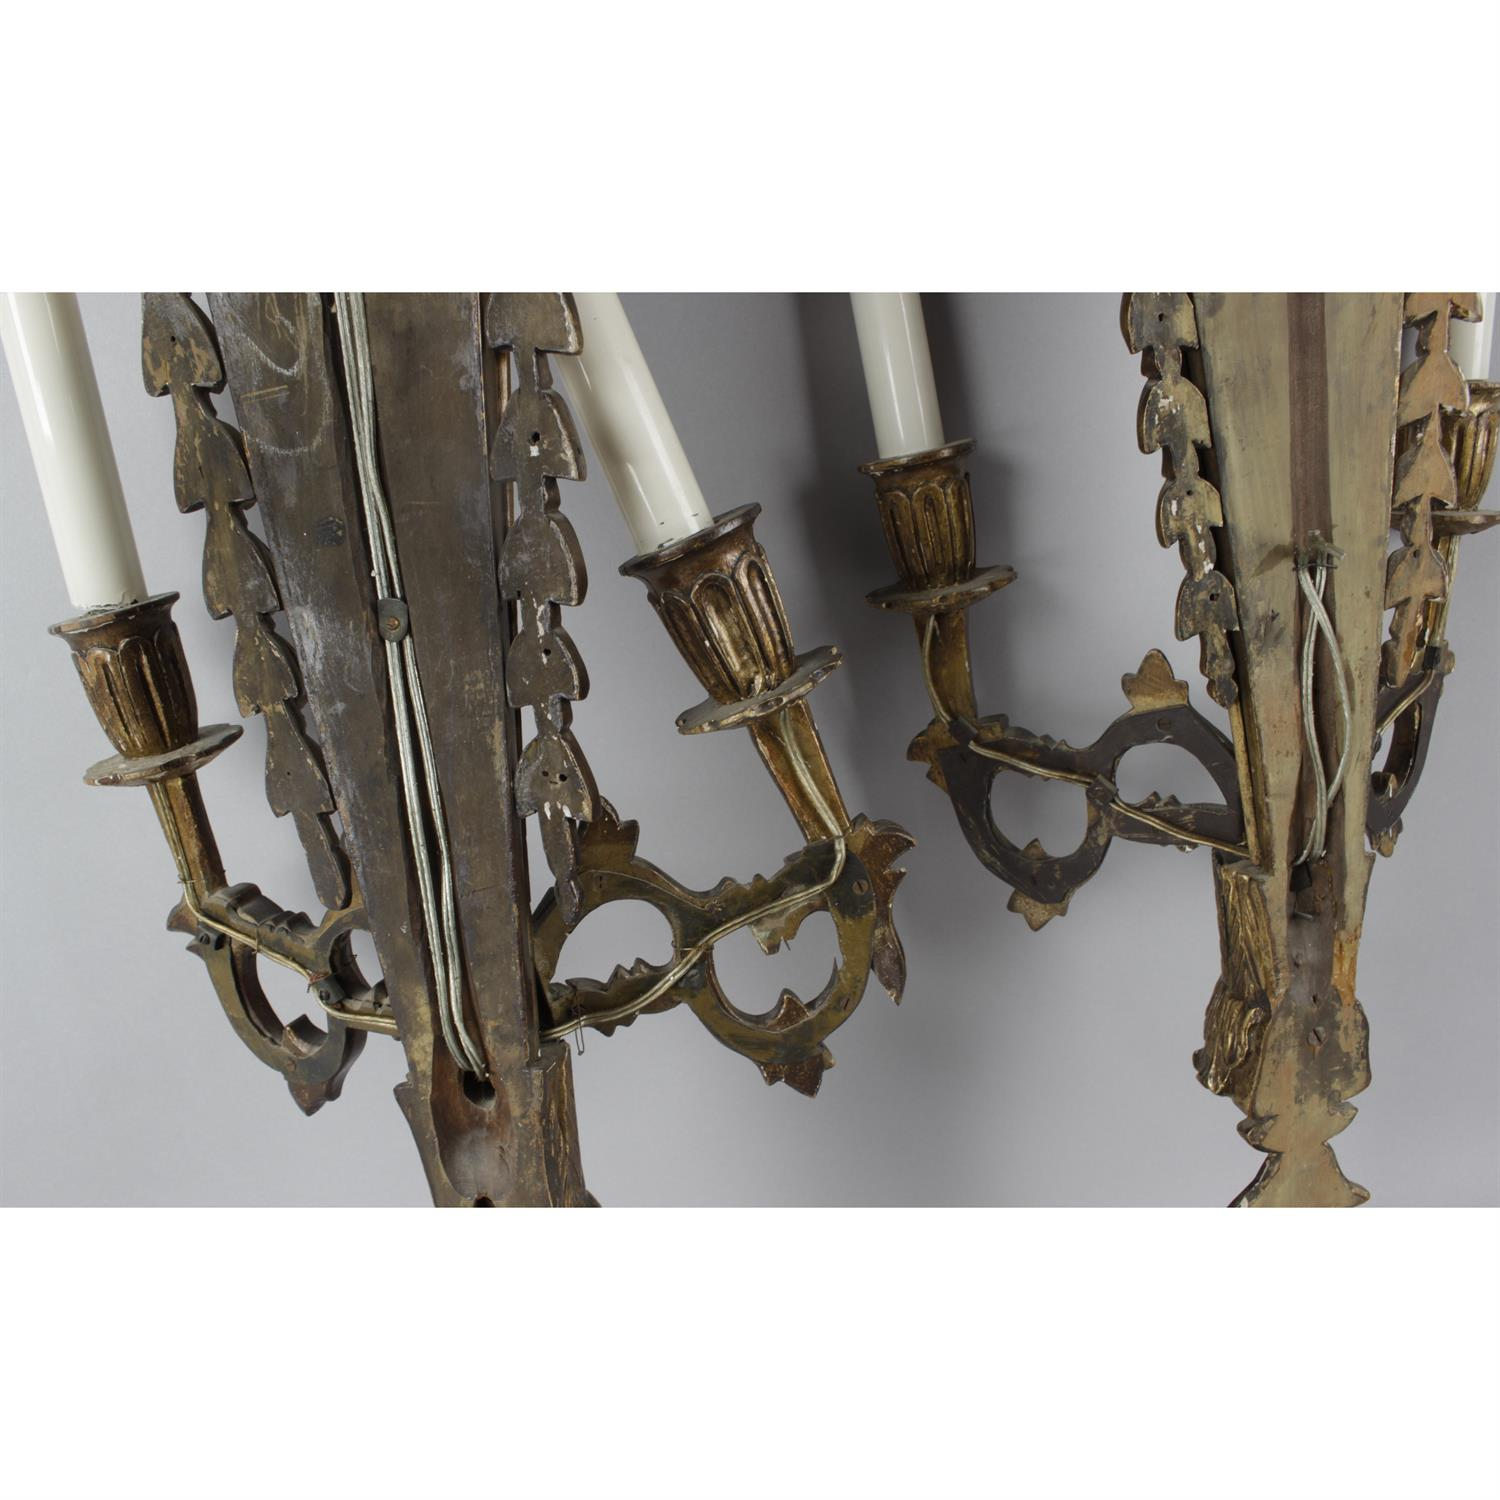 A pair of Giltwood Adam style twin branch wall lights - Image 3 of 3